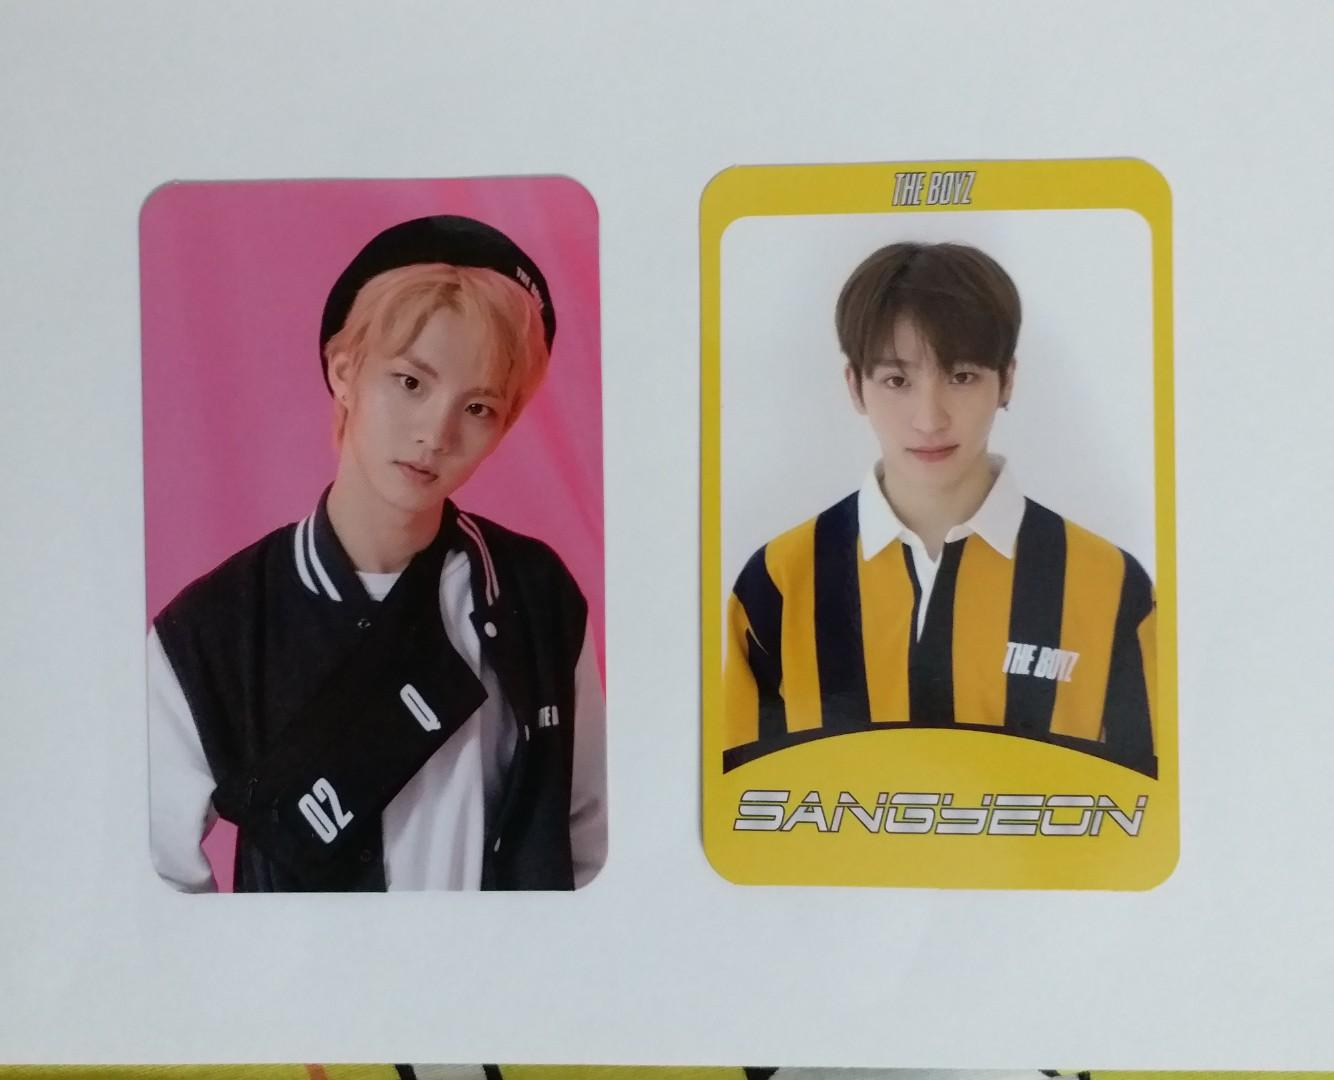 THE BOYZ the start giddy up photocard Q Juhaknyeon Sangyeon Hwall